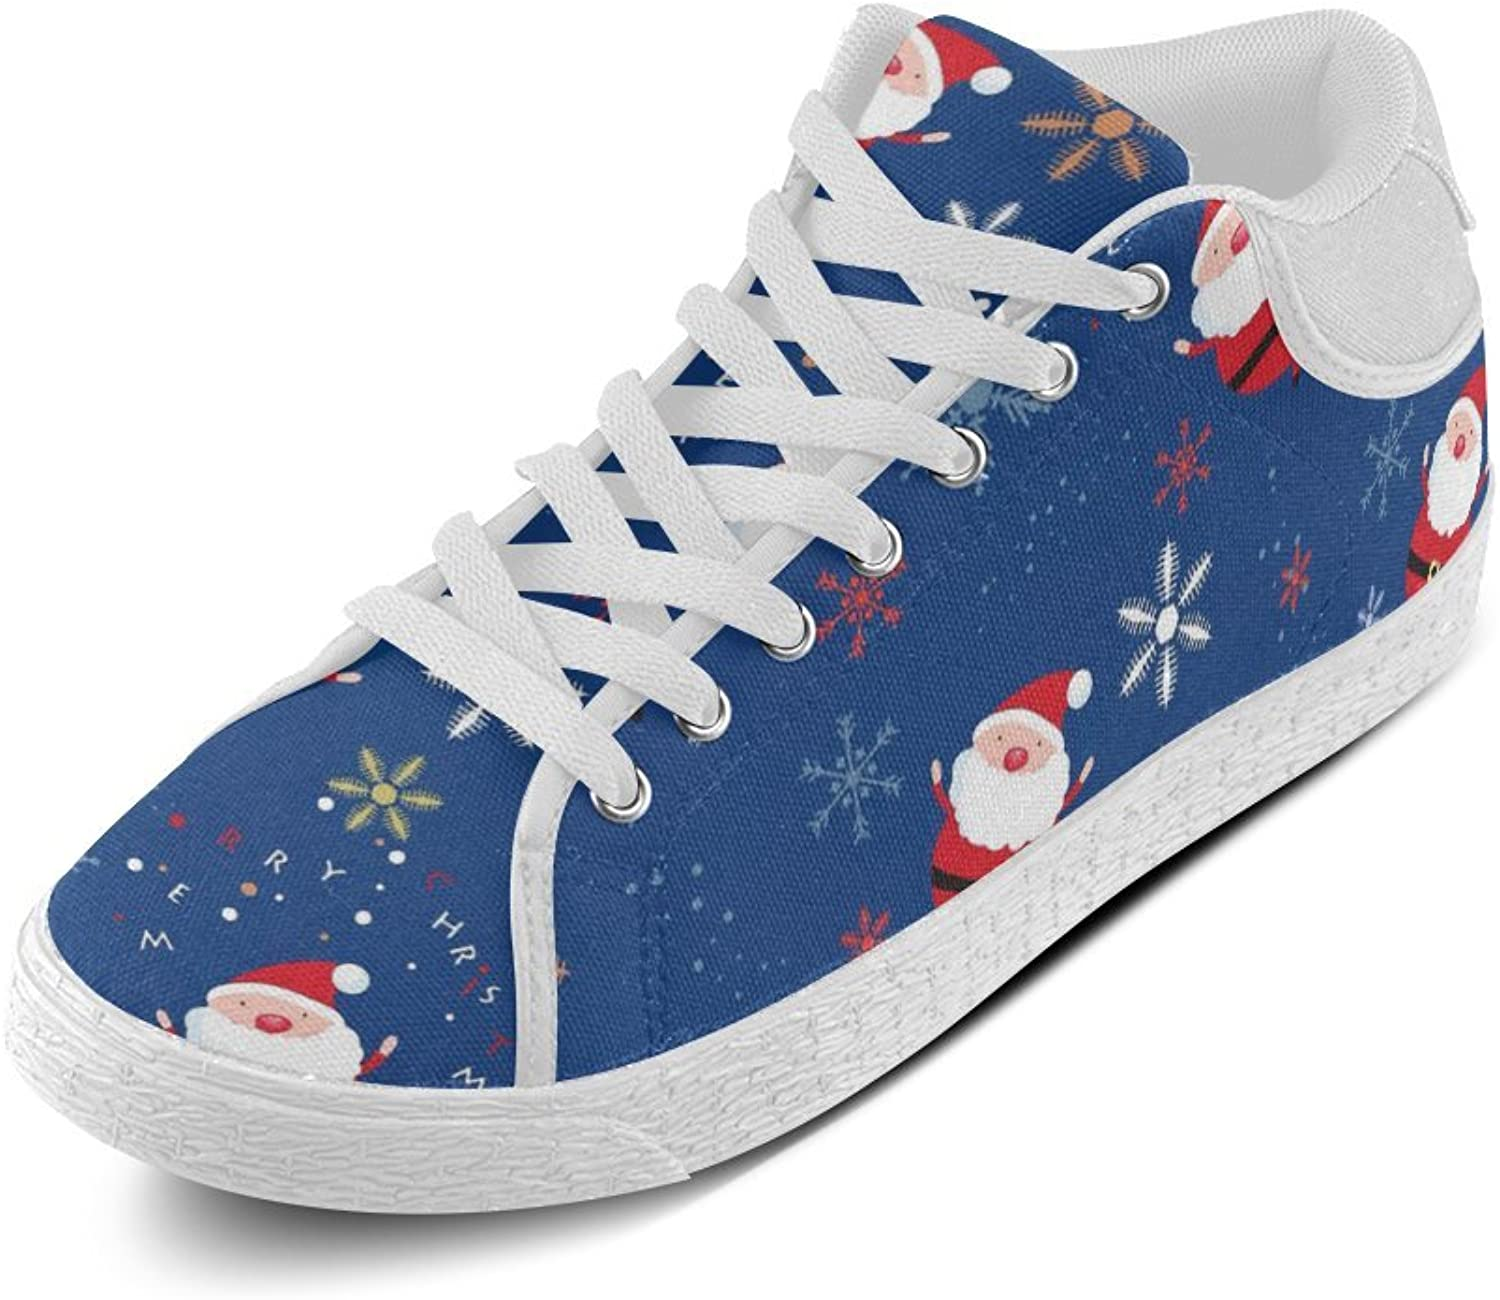 CERLYRUAN Christmas Santa Claus Canvas Chukka Canvas Women's shoes